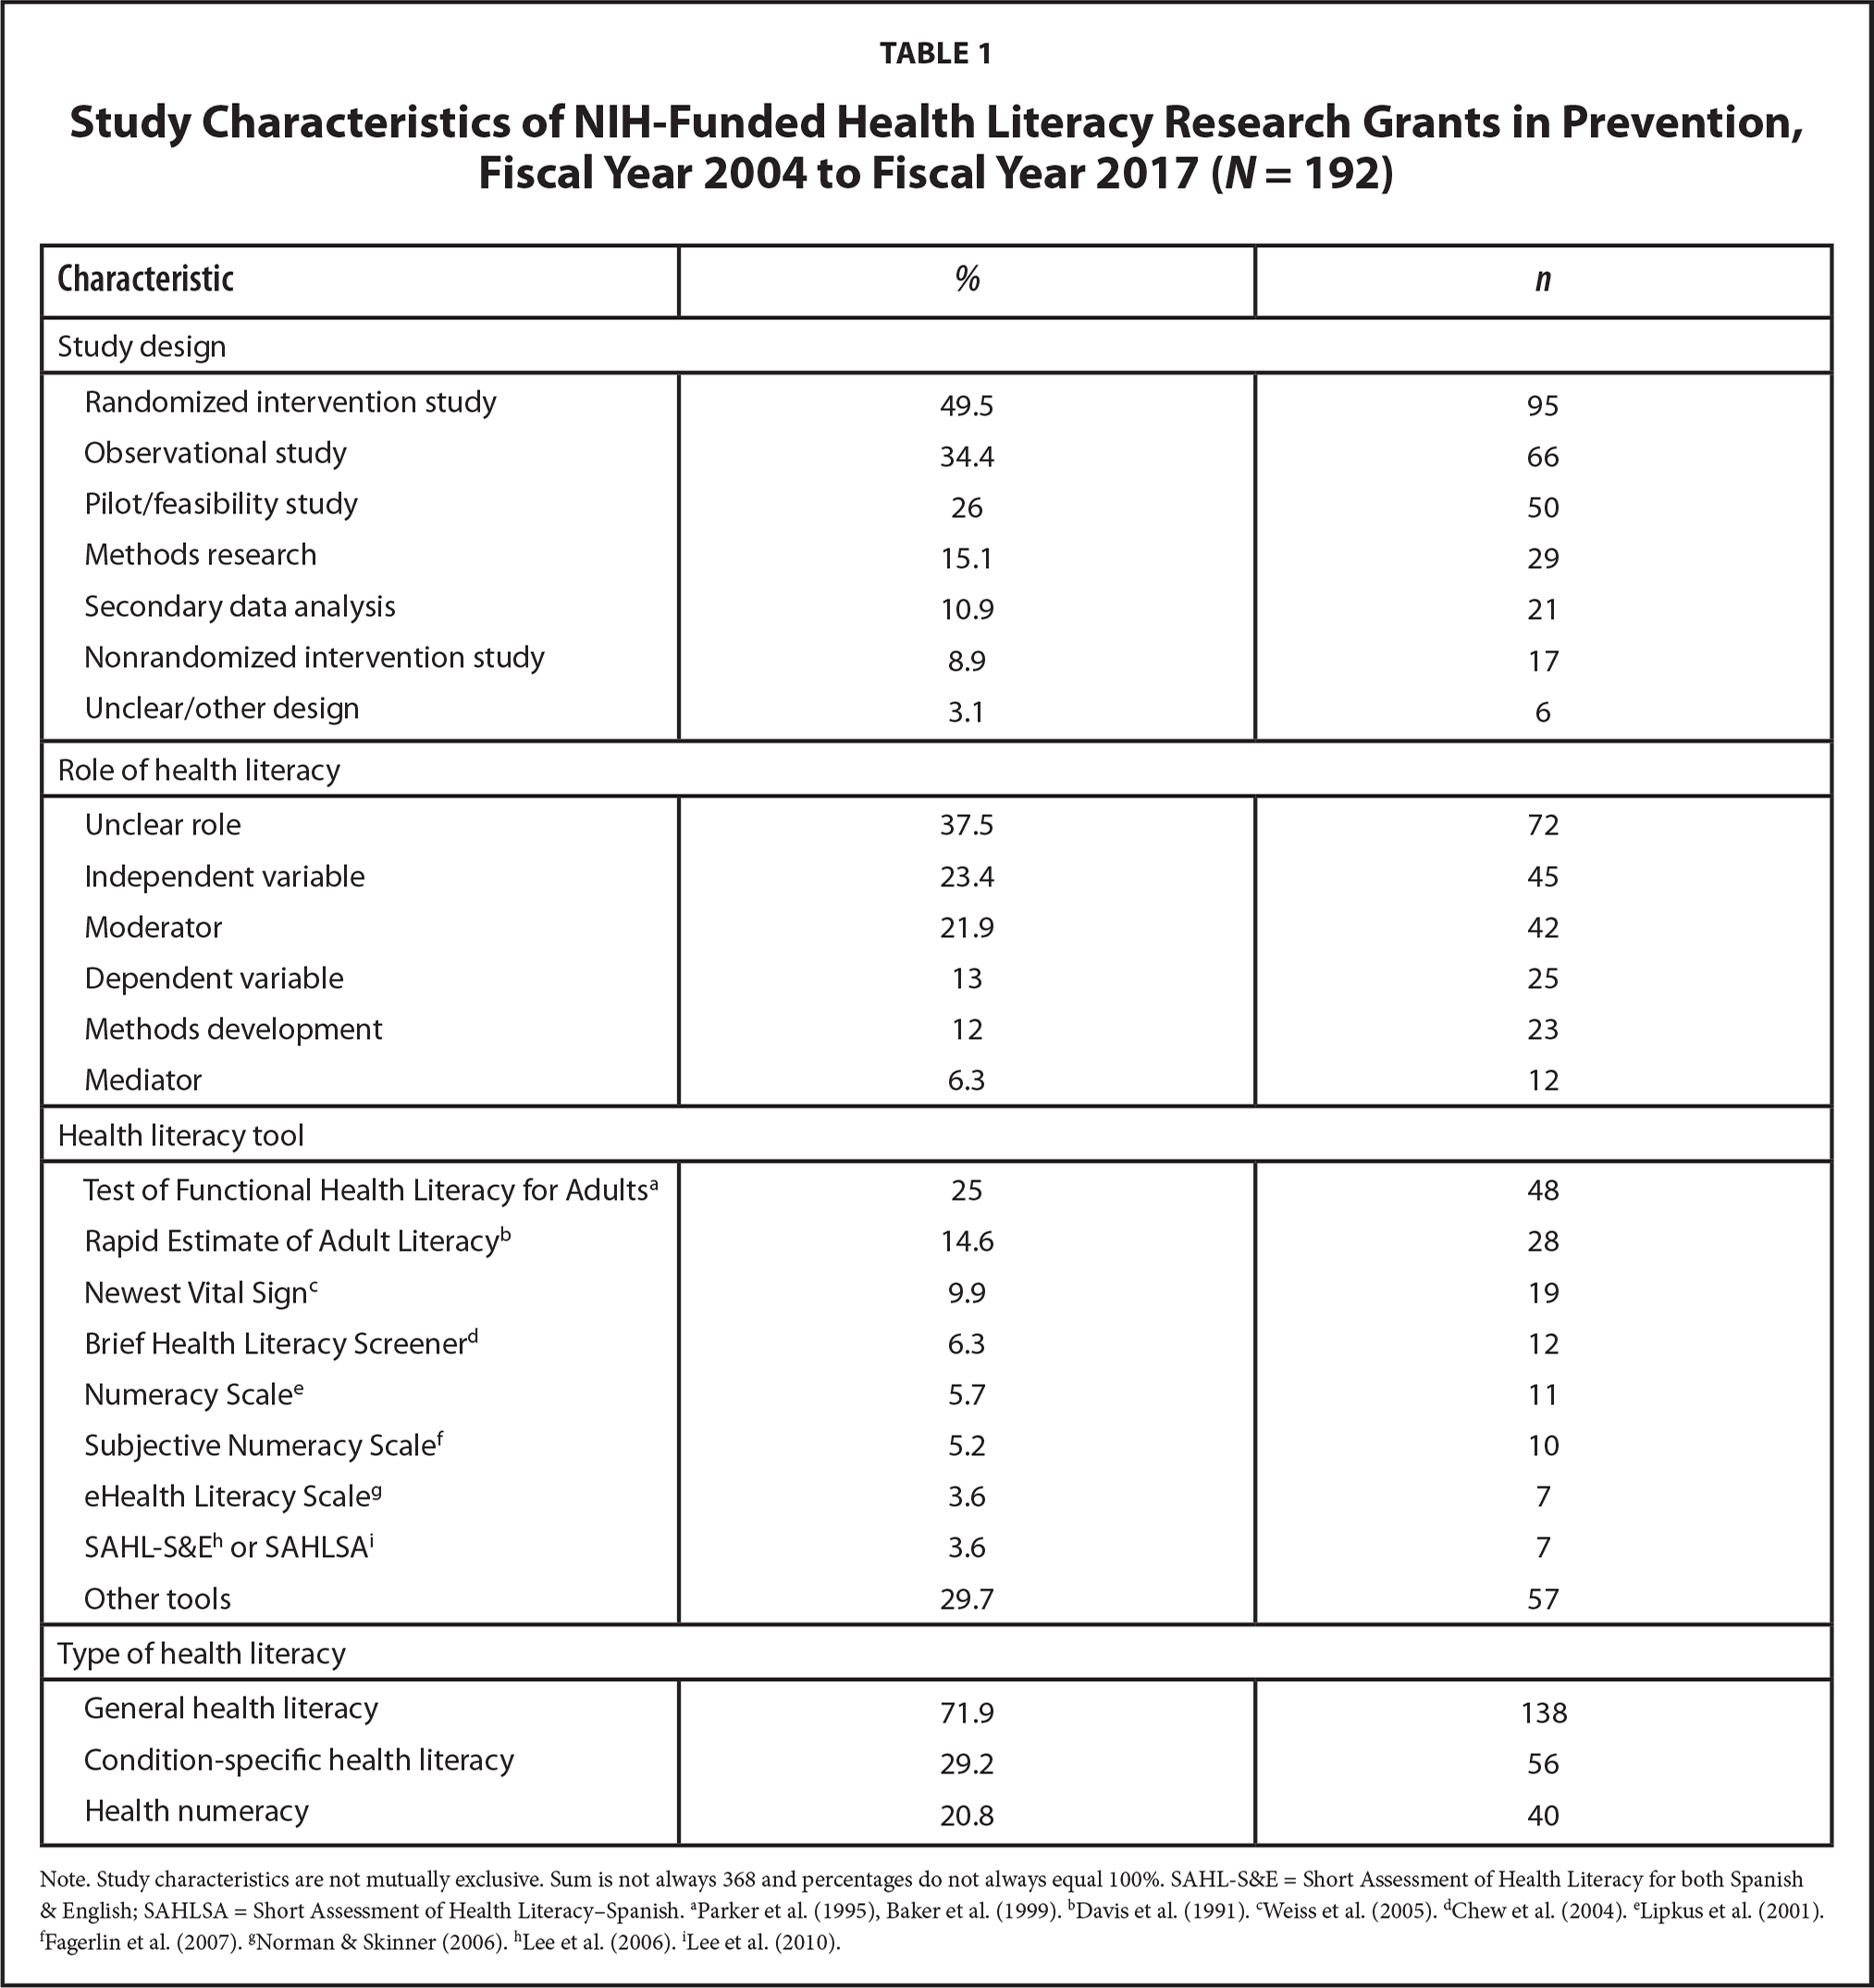 Study Characteristics of NIH-Funded Health Literacy Research Grants in Prevention, Fiscal Year 2004 to Fiscal Year 2017 (N = 192)